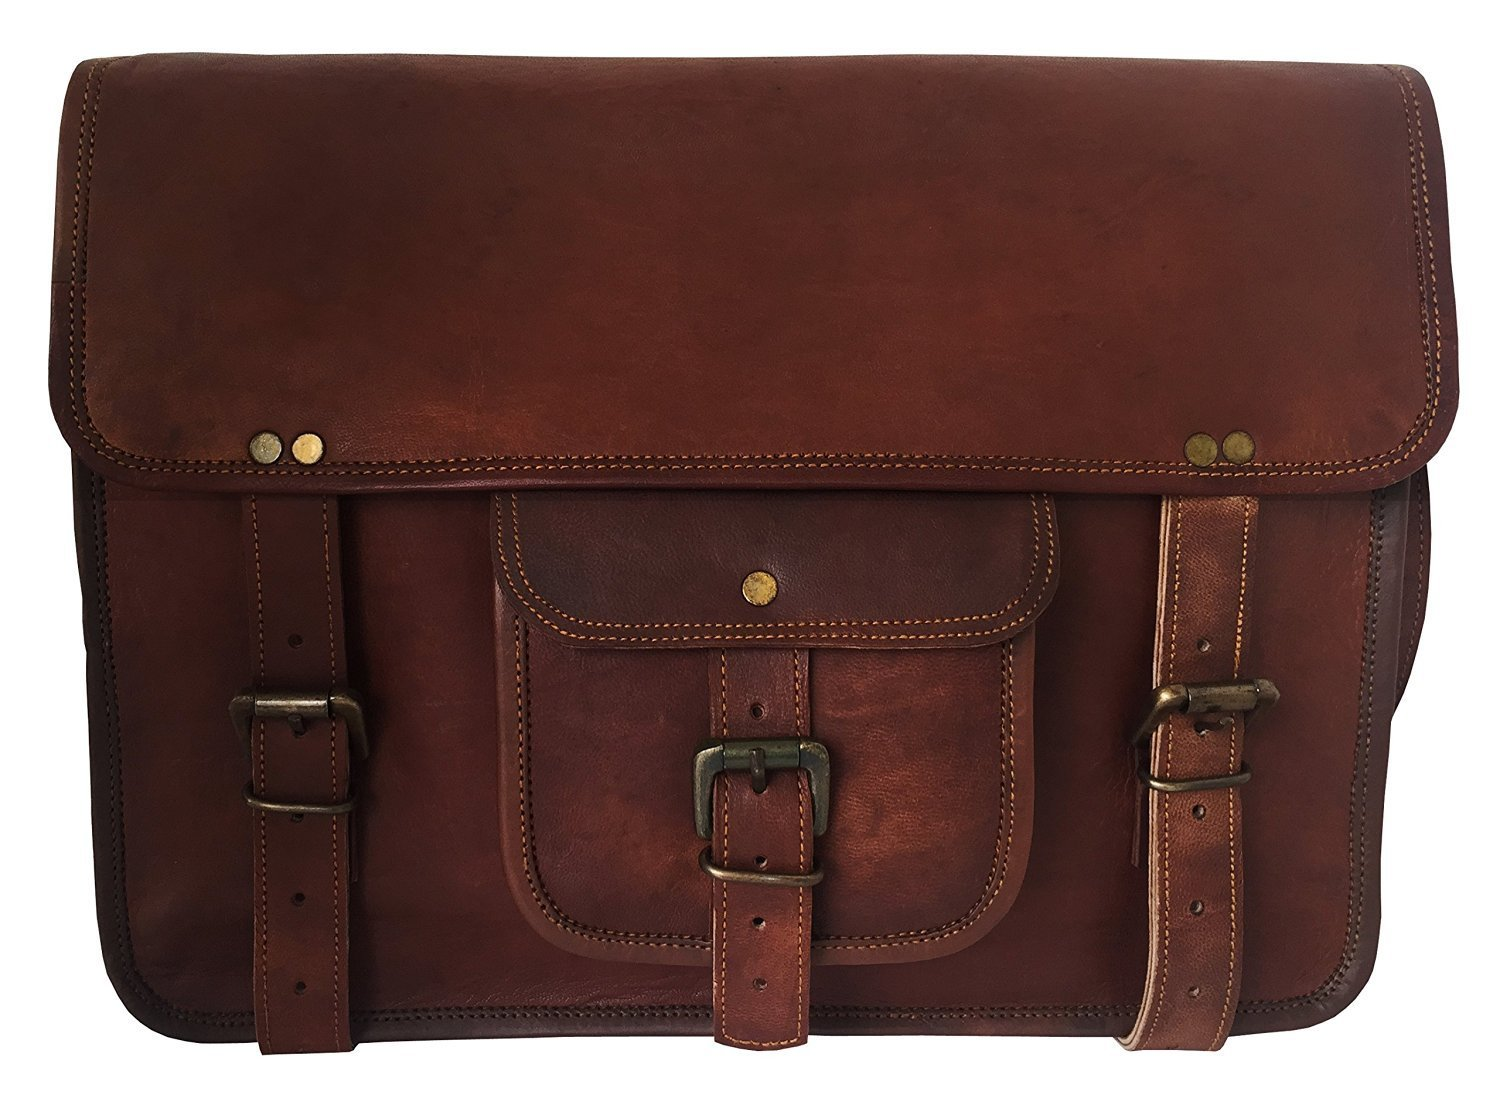 "HLC Vintage Leather Laptop Bag 15"" Messenger Handmade Briefcase Crossbody Shoulder Bag"